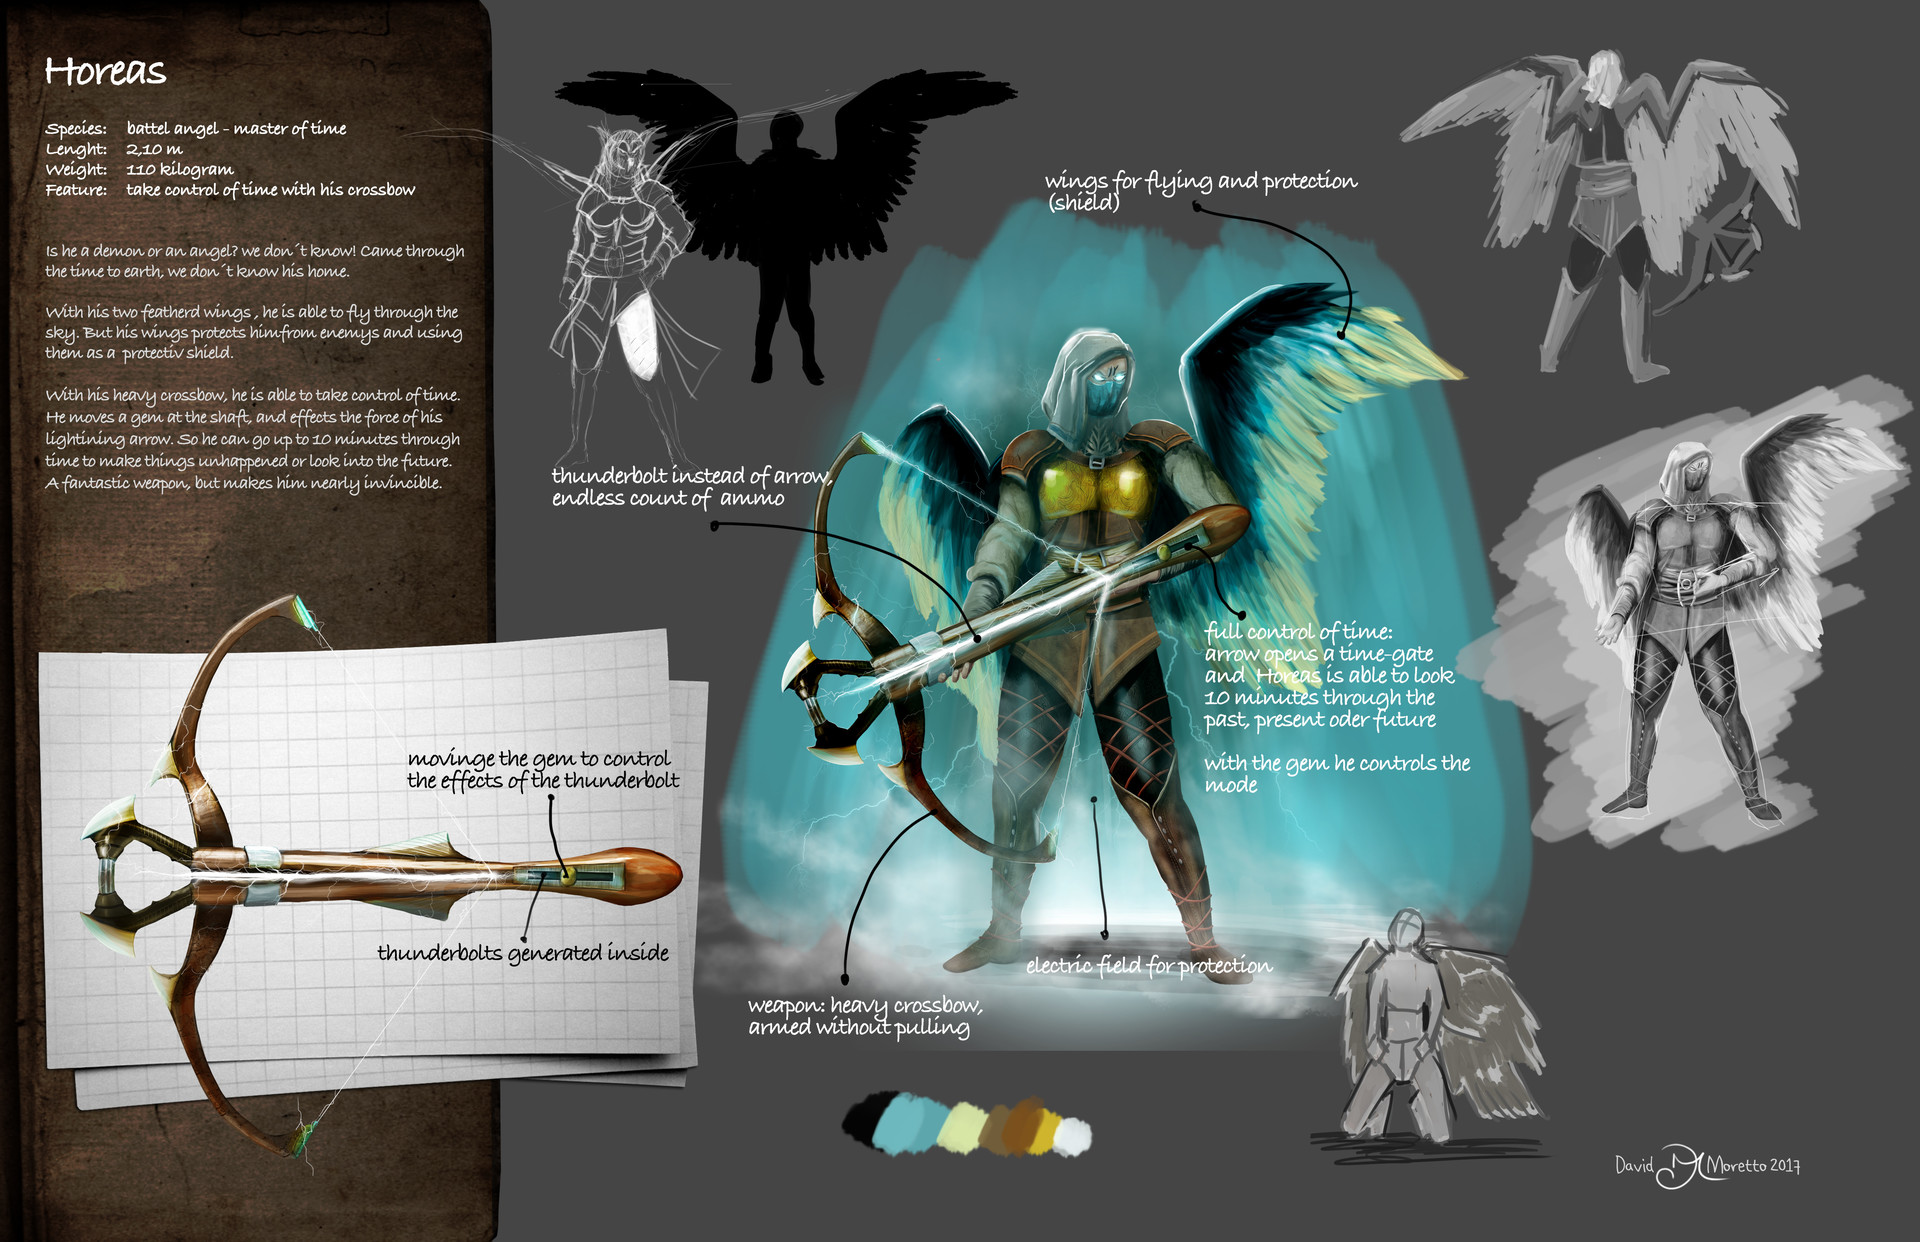 Concept Art of Horeas - the battle angel